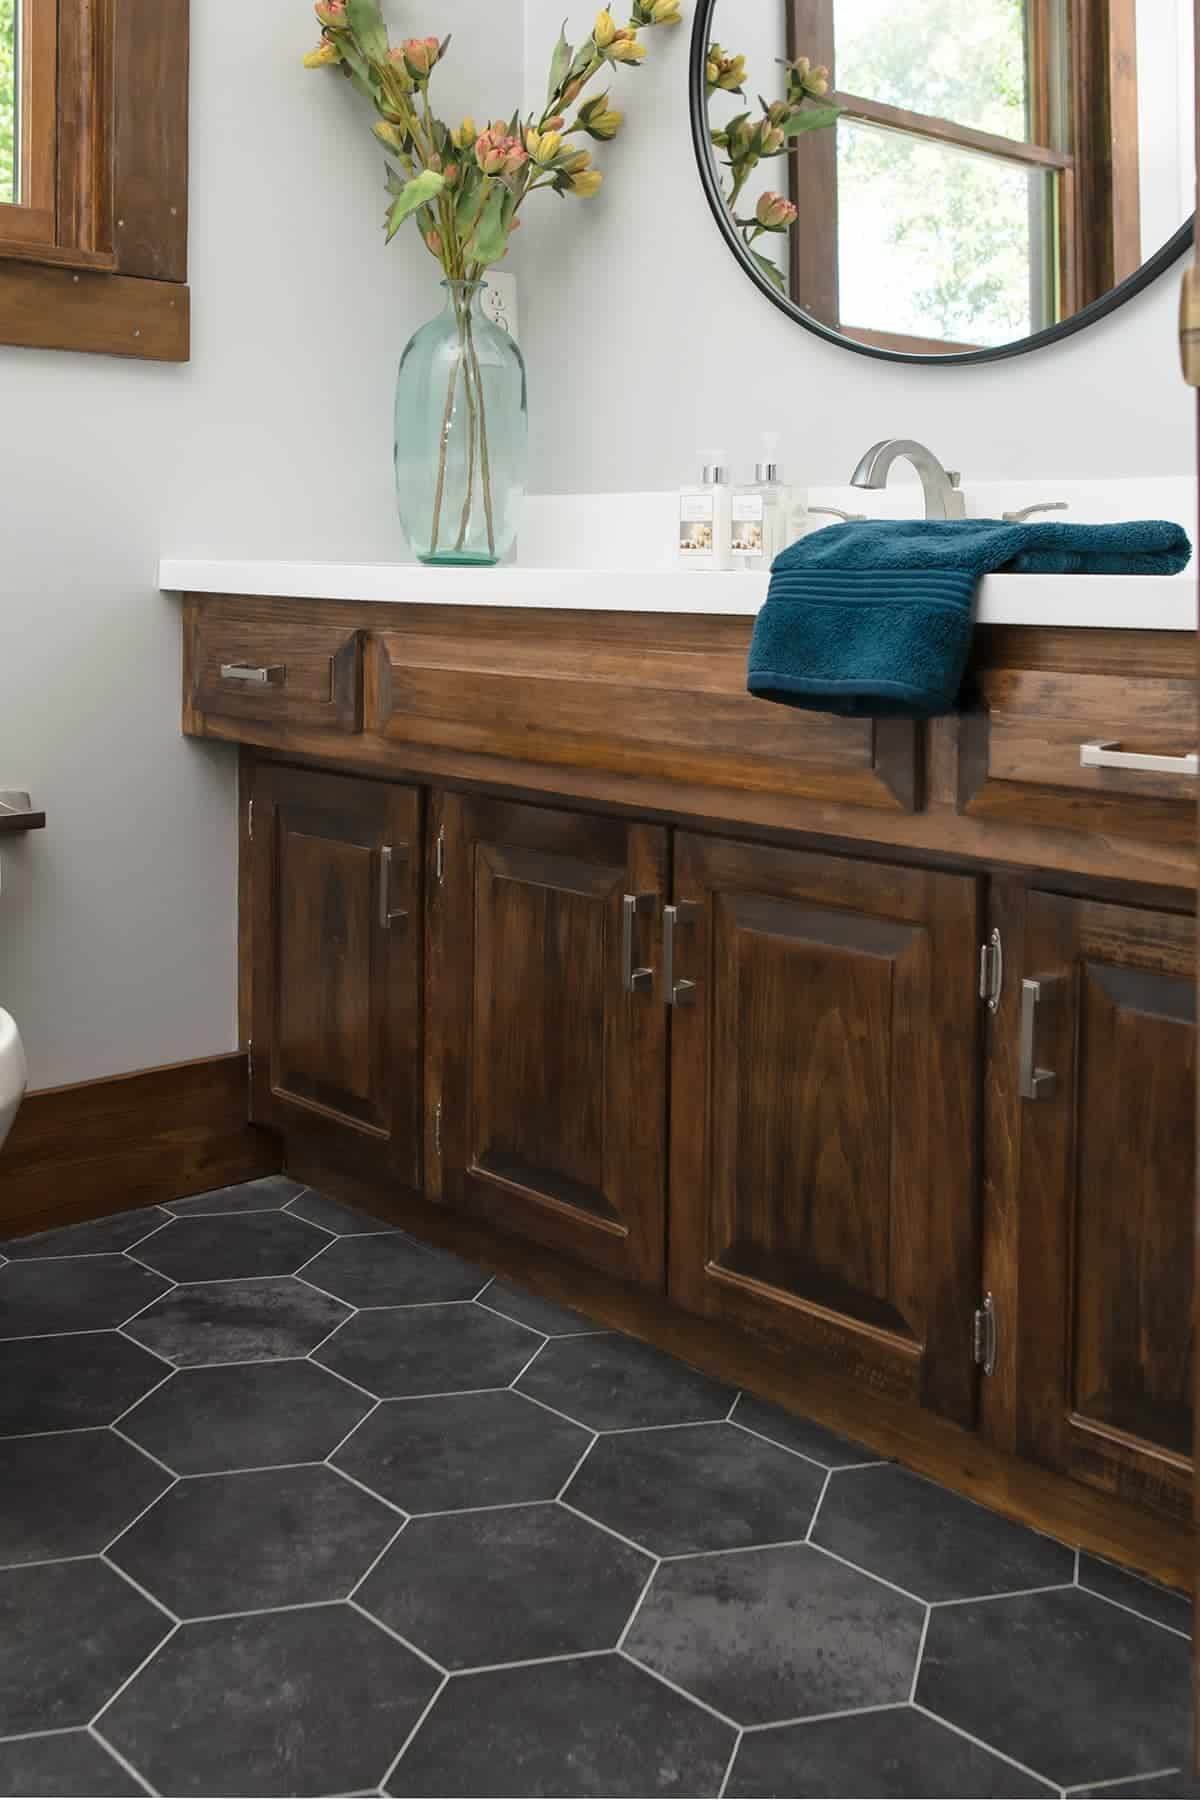 Dark gray groutable vinyl tile in modern farmhouse style updated bathroom.